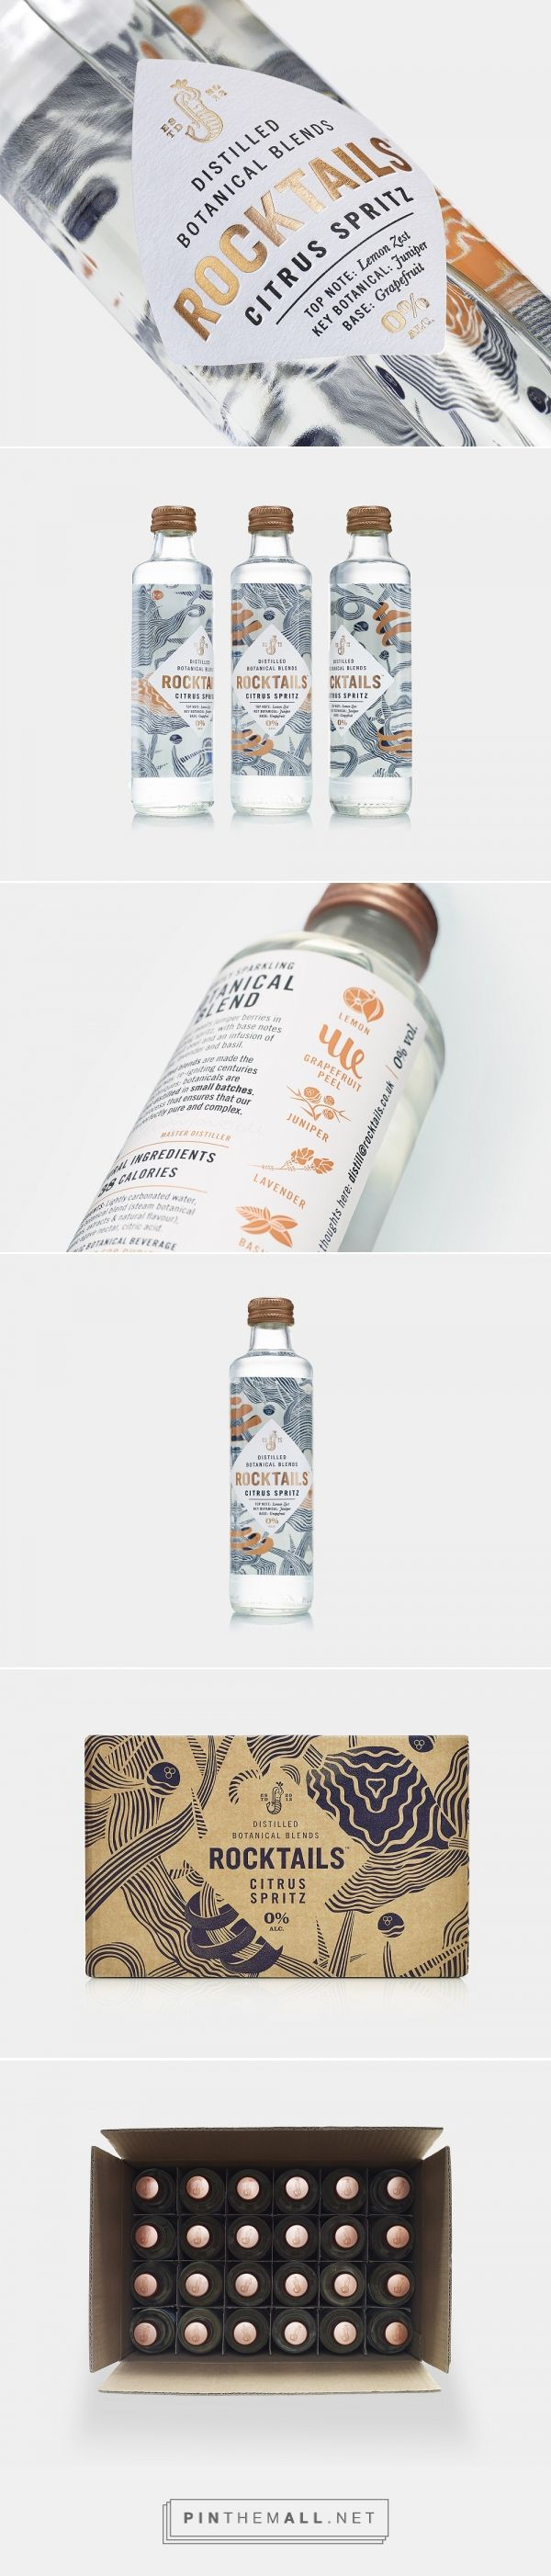 ROCKTAILS Botanical Blends packaging design by B&B studio - http://www.packagingoftheworld.com/2018/01/rocktails-botanical-blends.html